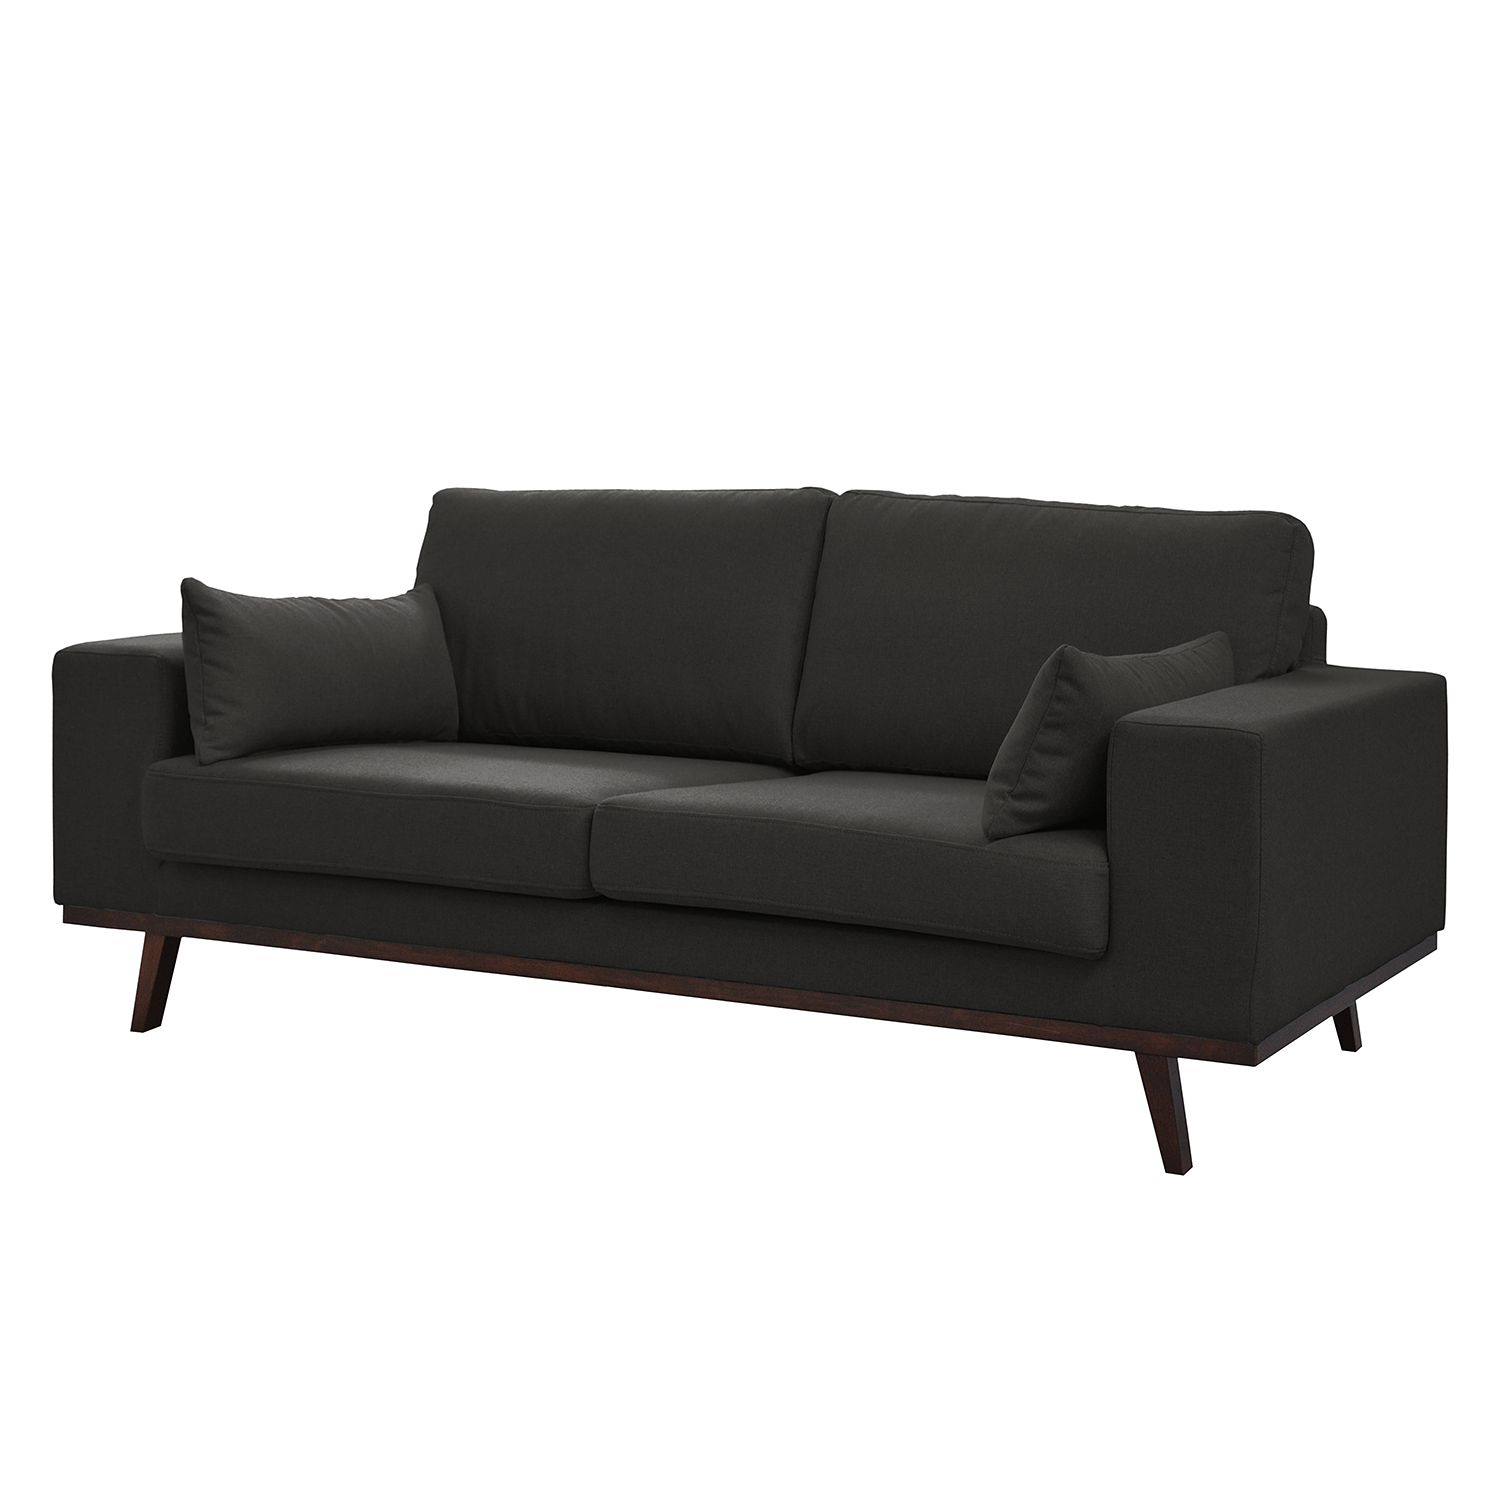 sofa billund 2 sitzer webstoff anthrazit morteens. Black Bedroom Furniture Sets. Home Design Ideas